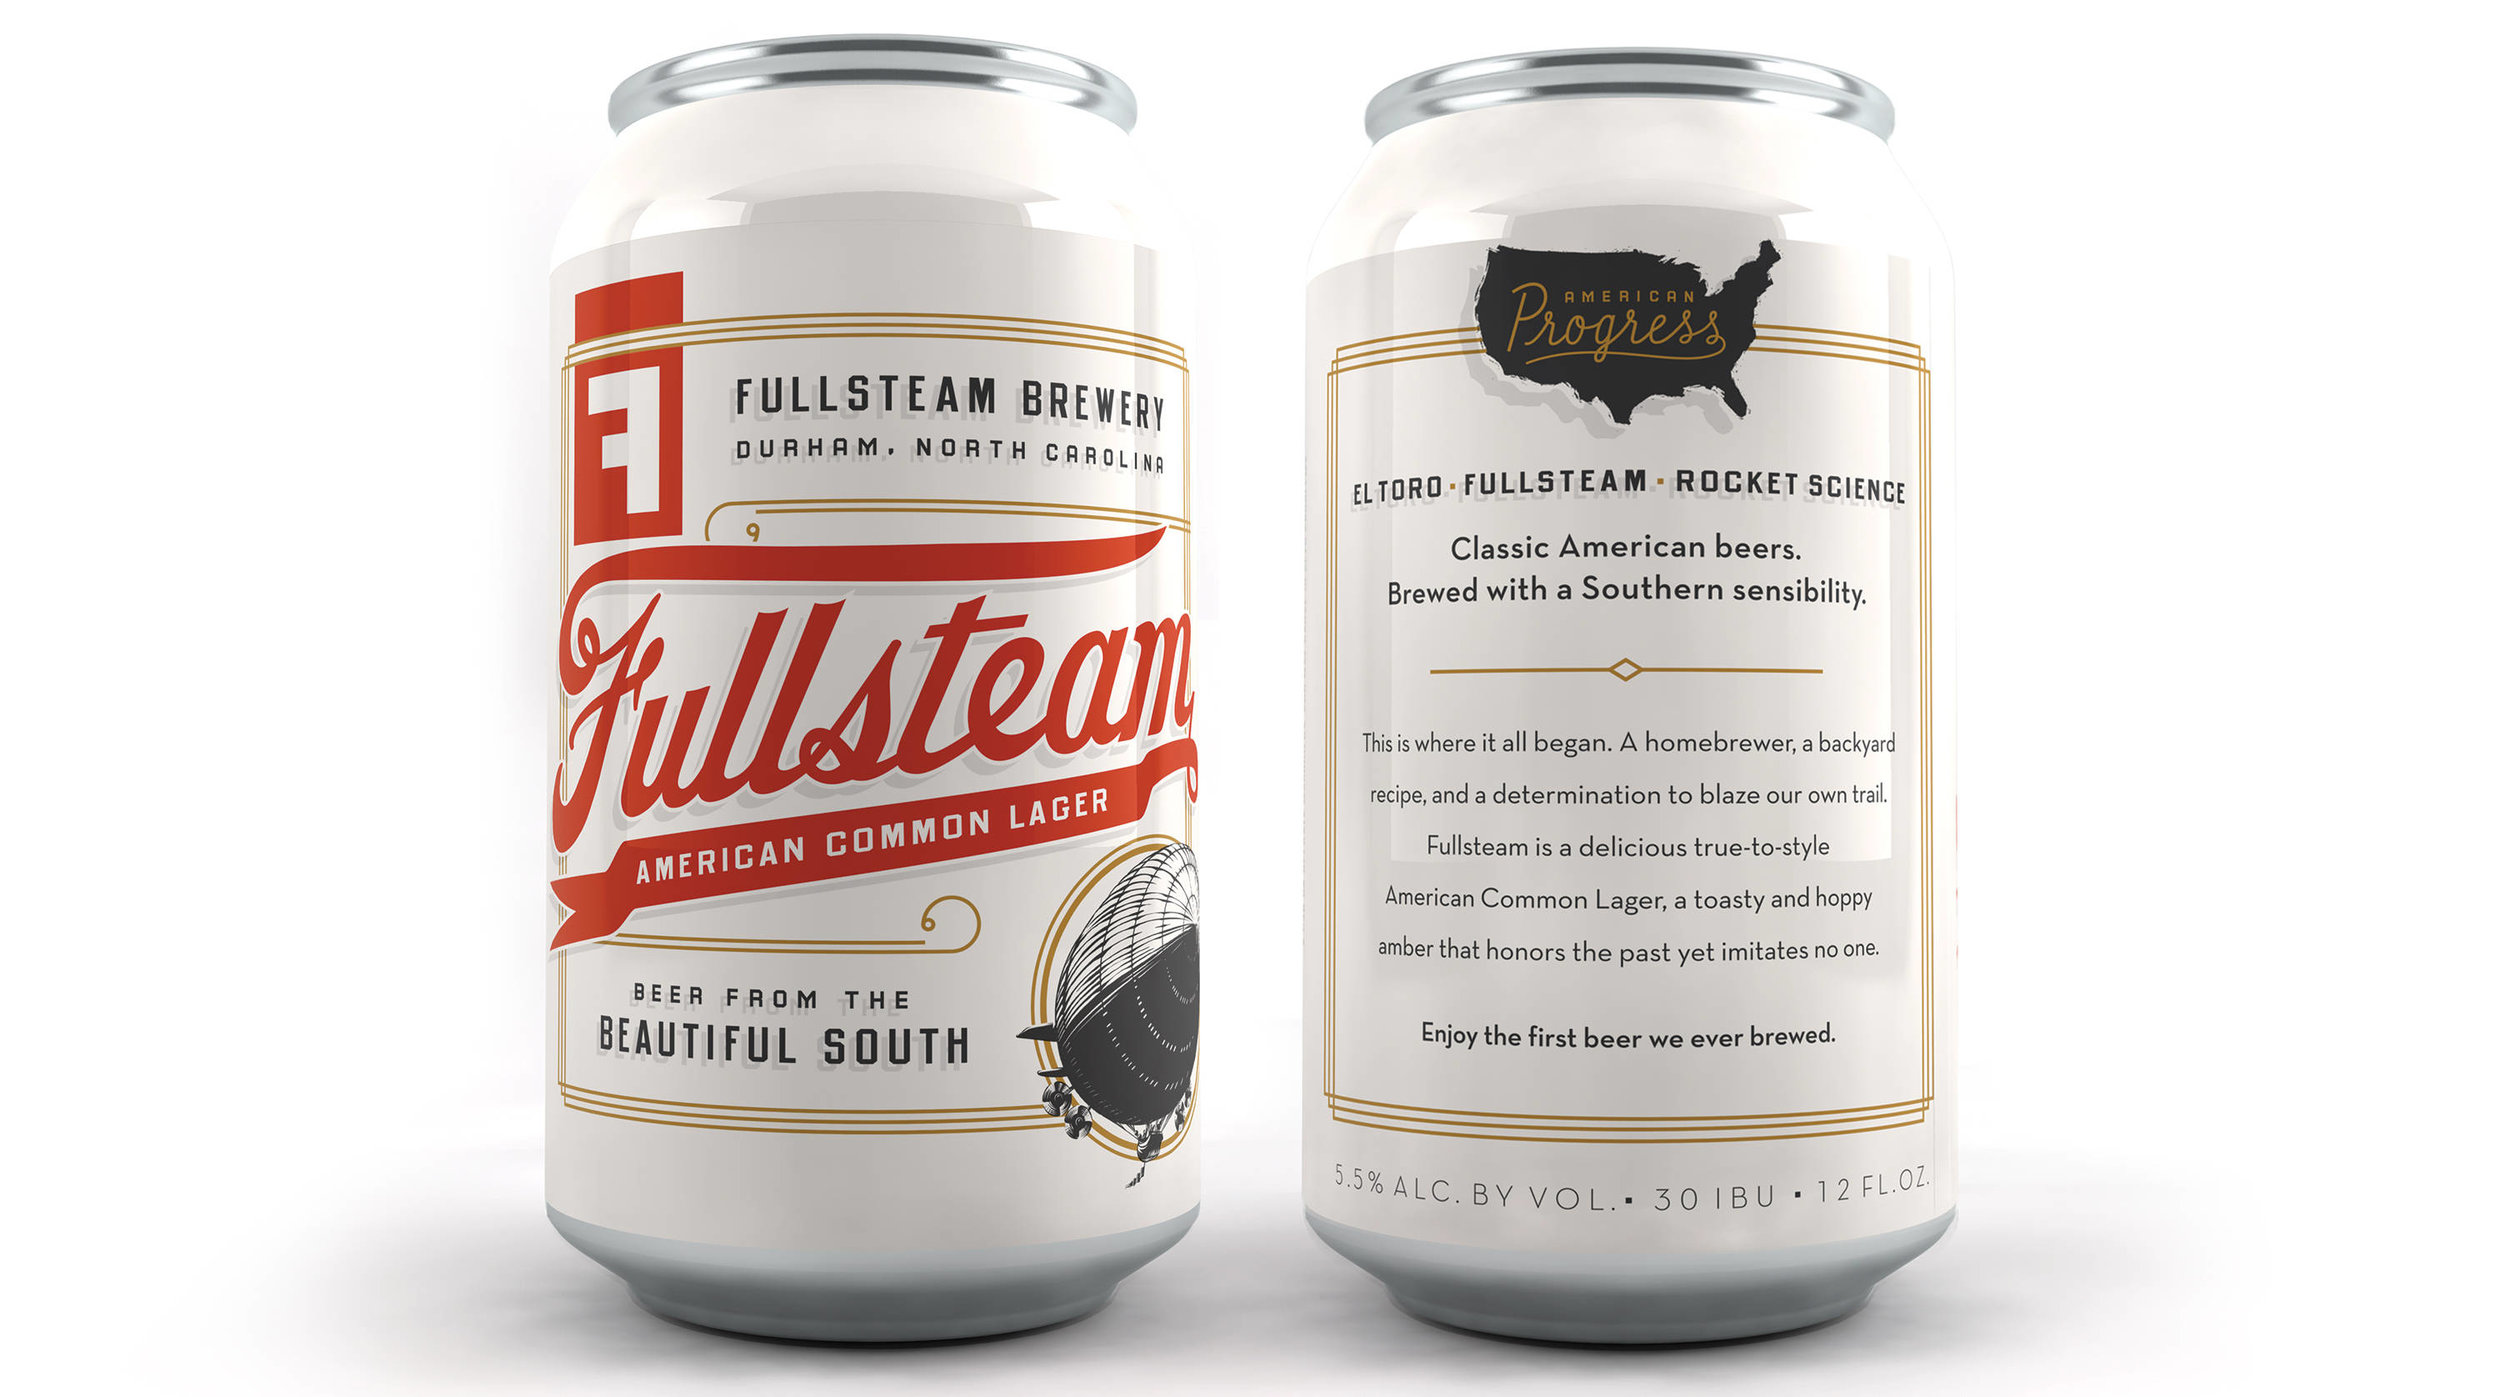 Fullsteam-American-Progress-Fullsteam-Can-Back_2c4223e0edadaa7618bdfc3ac8c67517.jpg